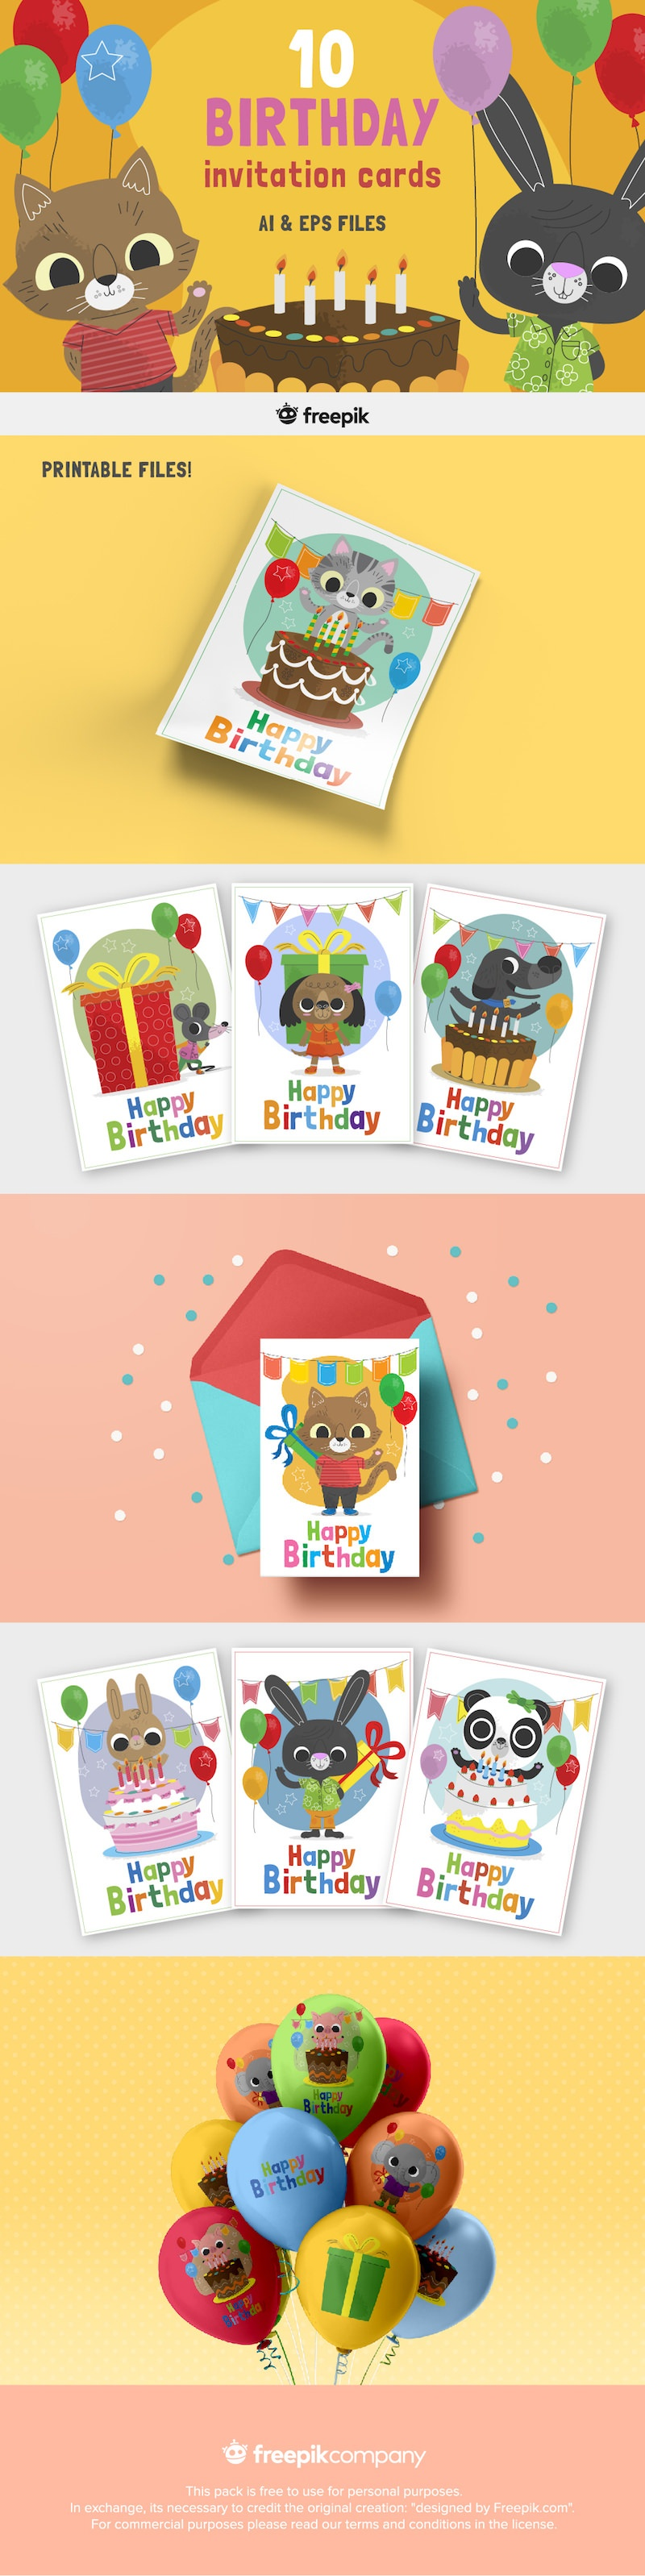 free cute birthday invitation cards for kids